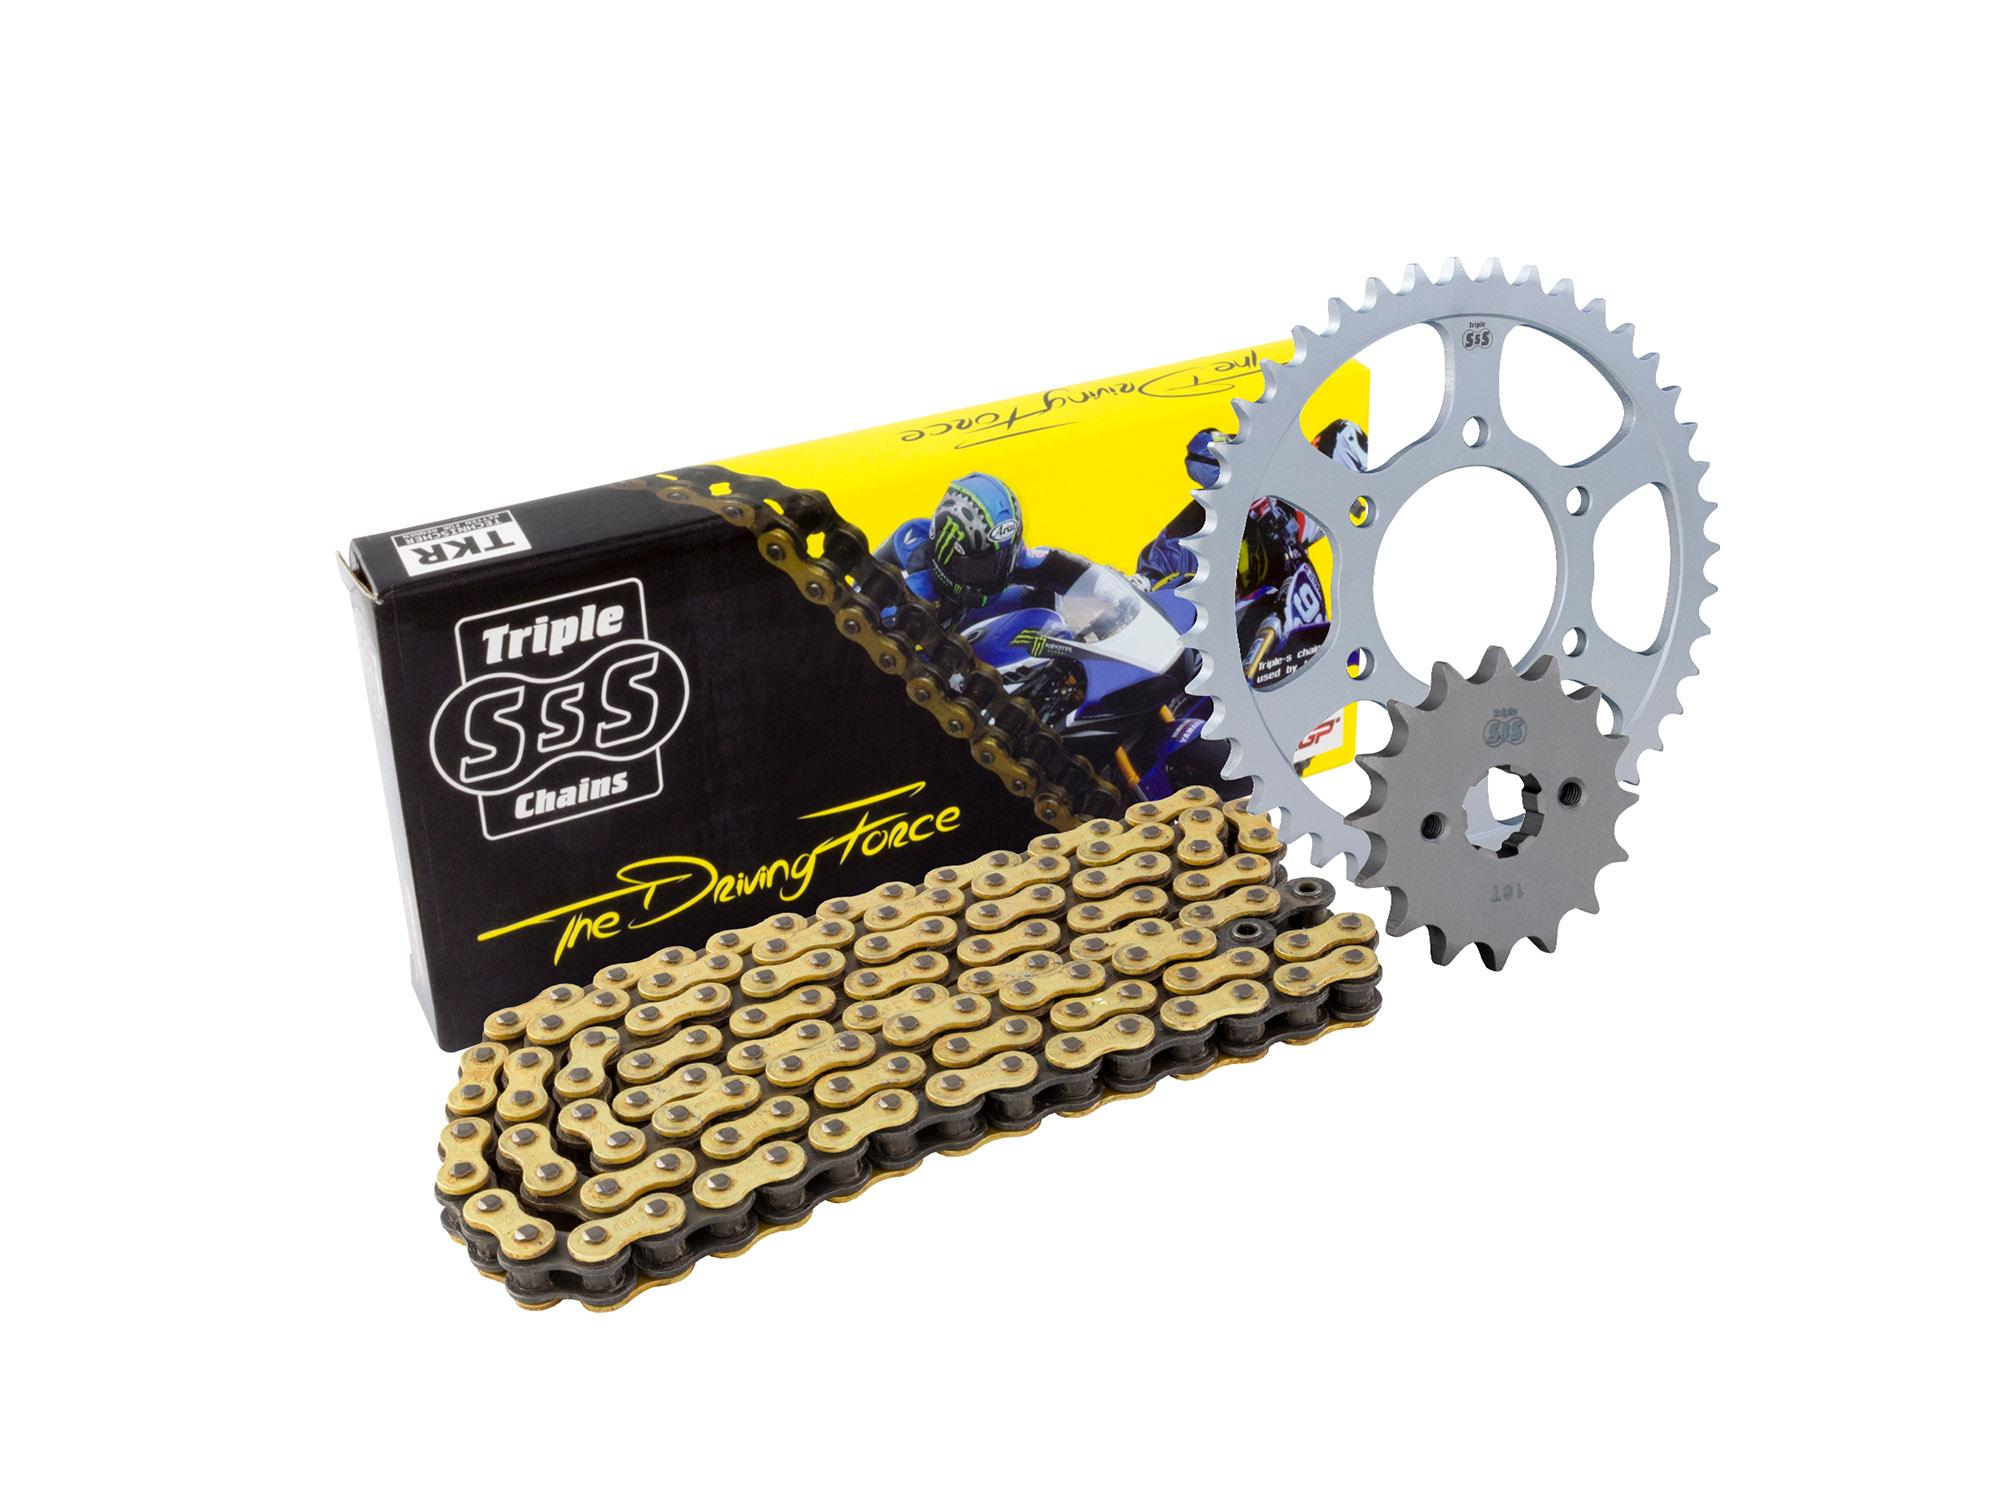 Honda CBF600 N-4/5/6/7 04-07 Chain & Sprocket Kit: 15T Front, 43T Rear, HD O-Ring Gold Chain 525H 116Link